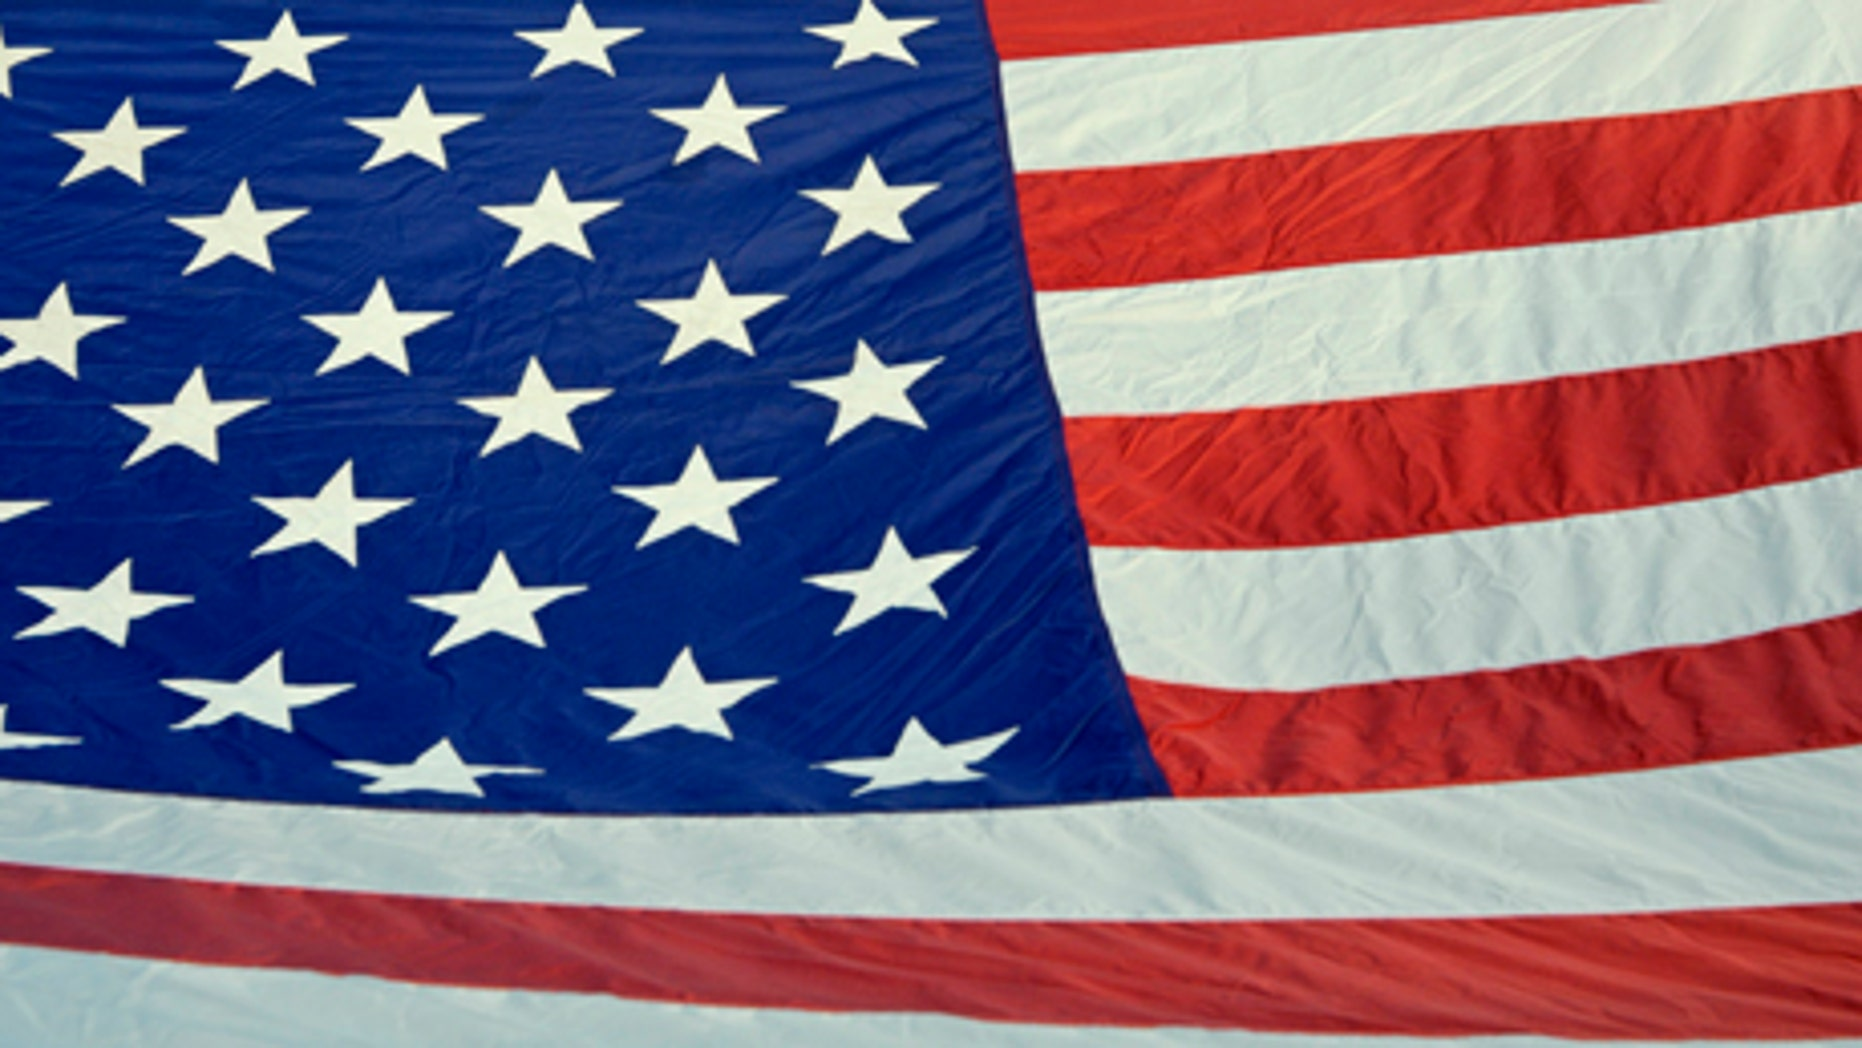 A Texas man claims he was forced to remove an American flag like this one from his balcony.